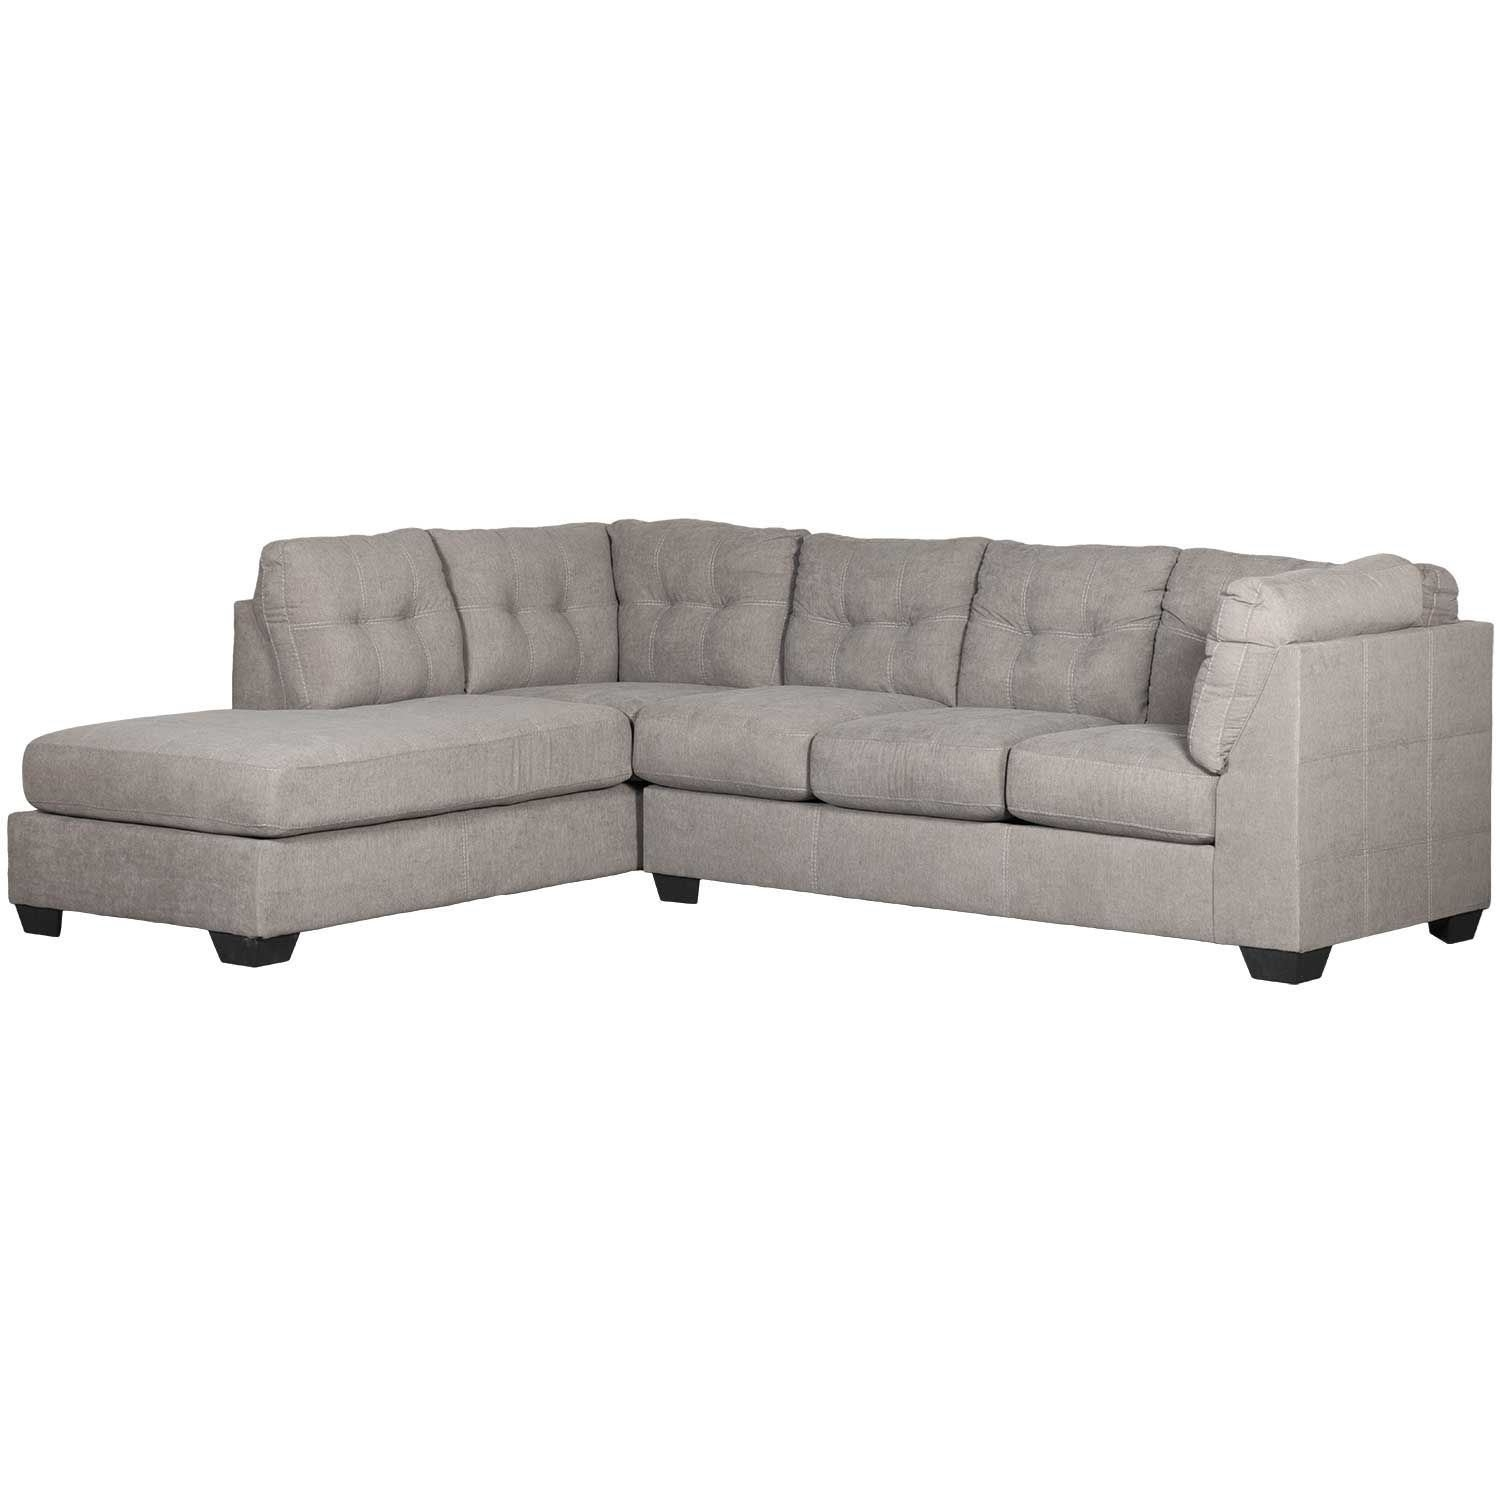 Maier Charcoal 2 Piece Sectional With Laf Chaise | 4520016/67 Inside Arrowmask 2 Piece Sectionals With Sleeper & Right Facing Chaise (Image 14 of 25)